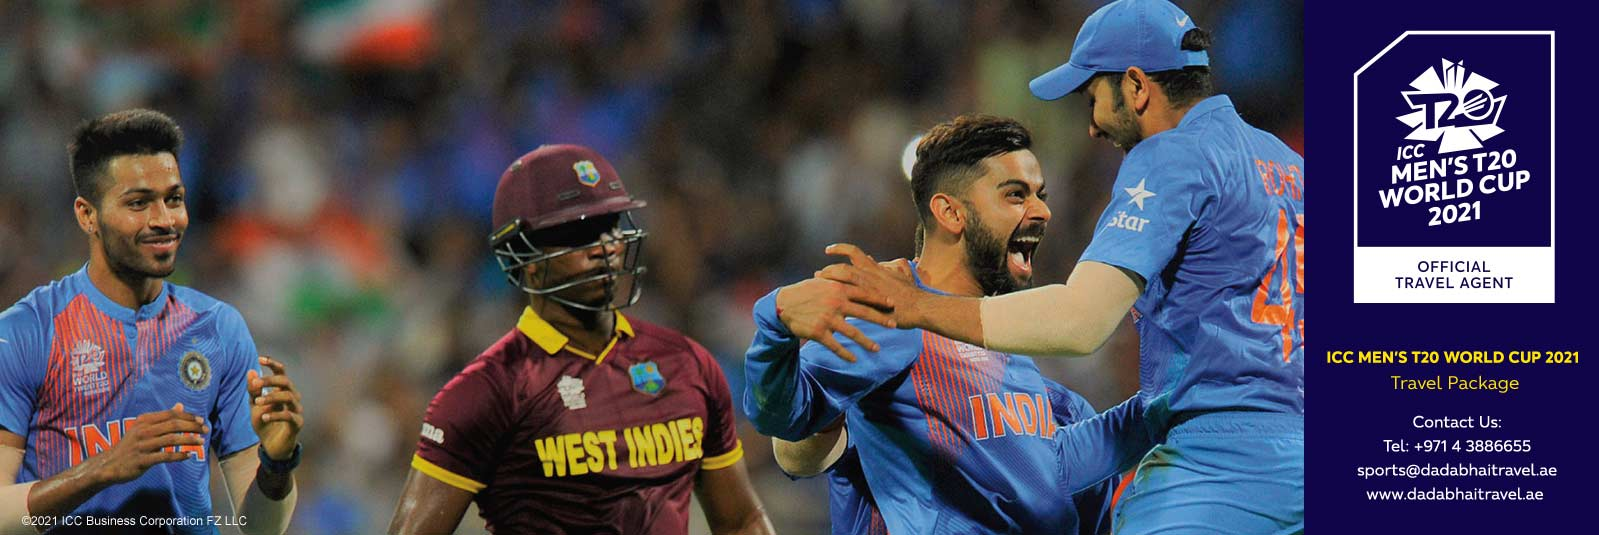 ICC Men's T20 World Cup 2021 Book Your Match Ticket Inclusive Travel Package